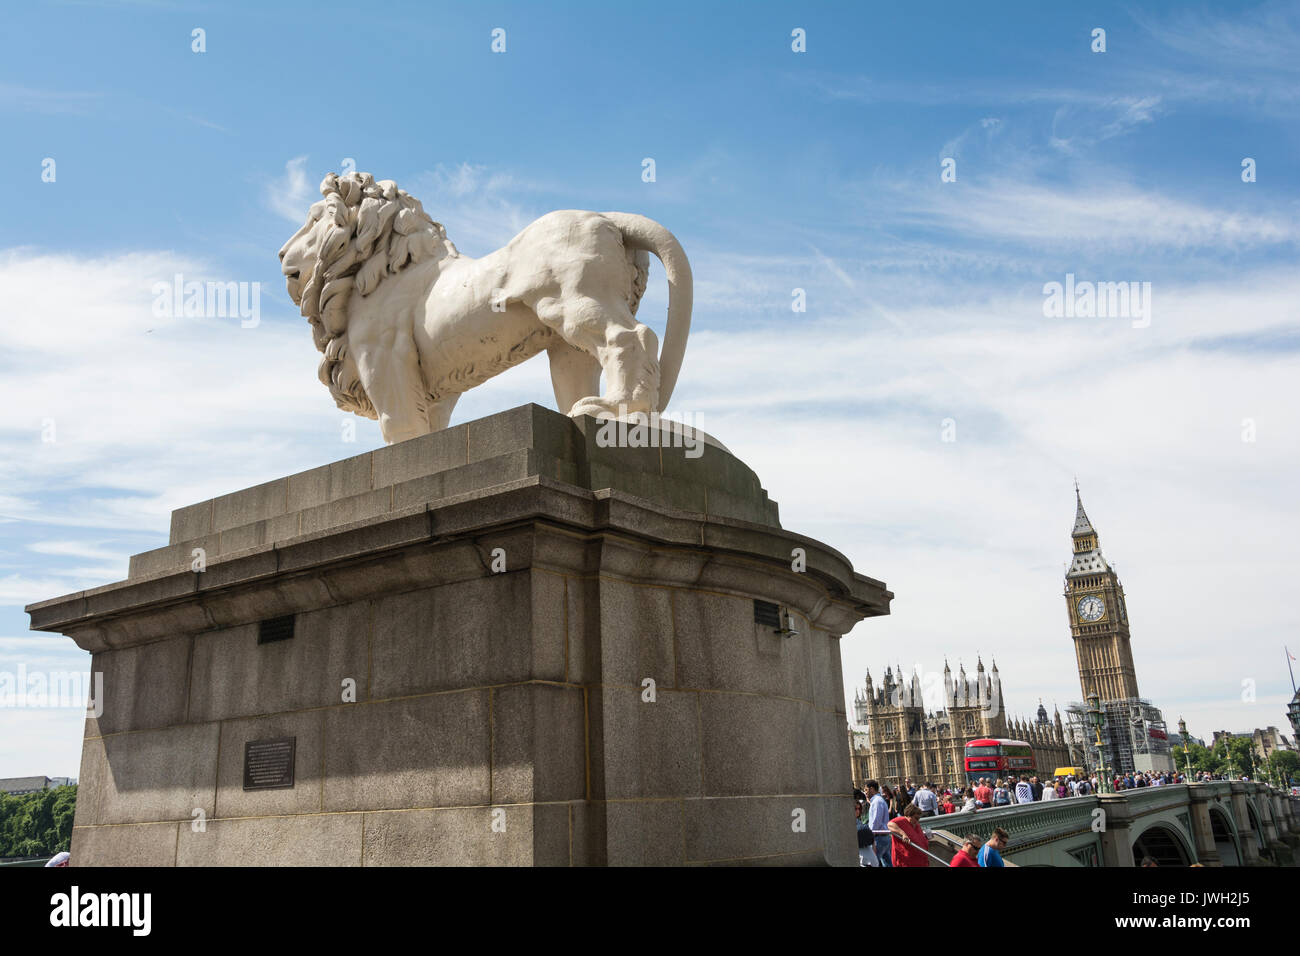 The South Bank Coade stone Lion, by William F. Woodington, on Westminster Bridge, London, UK - Stock Image